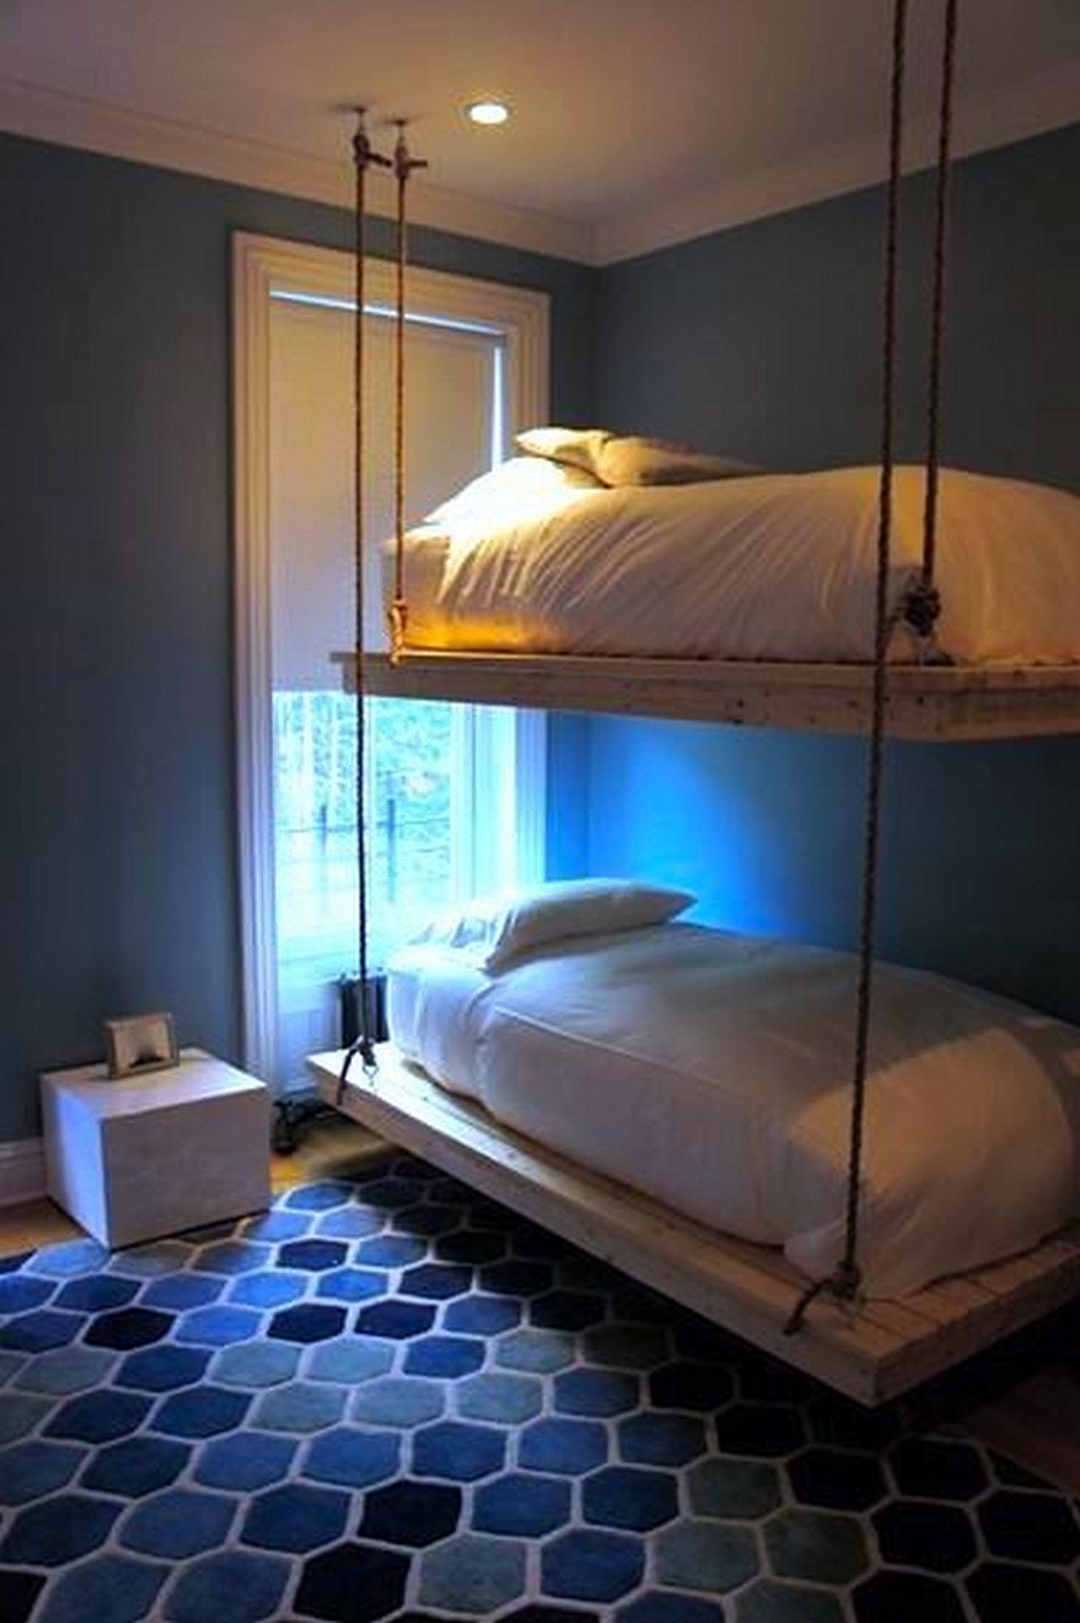 Amazing hanging bed design idea hanging beds bed design and